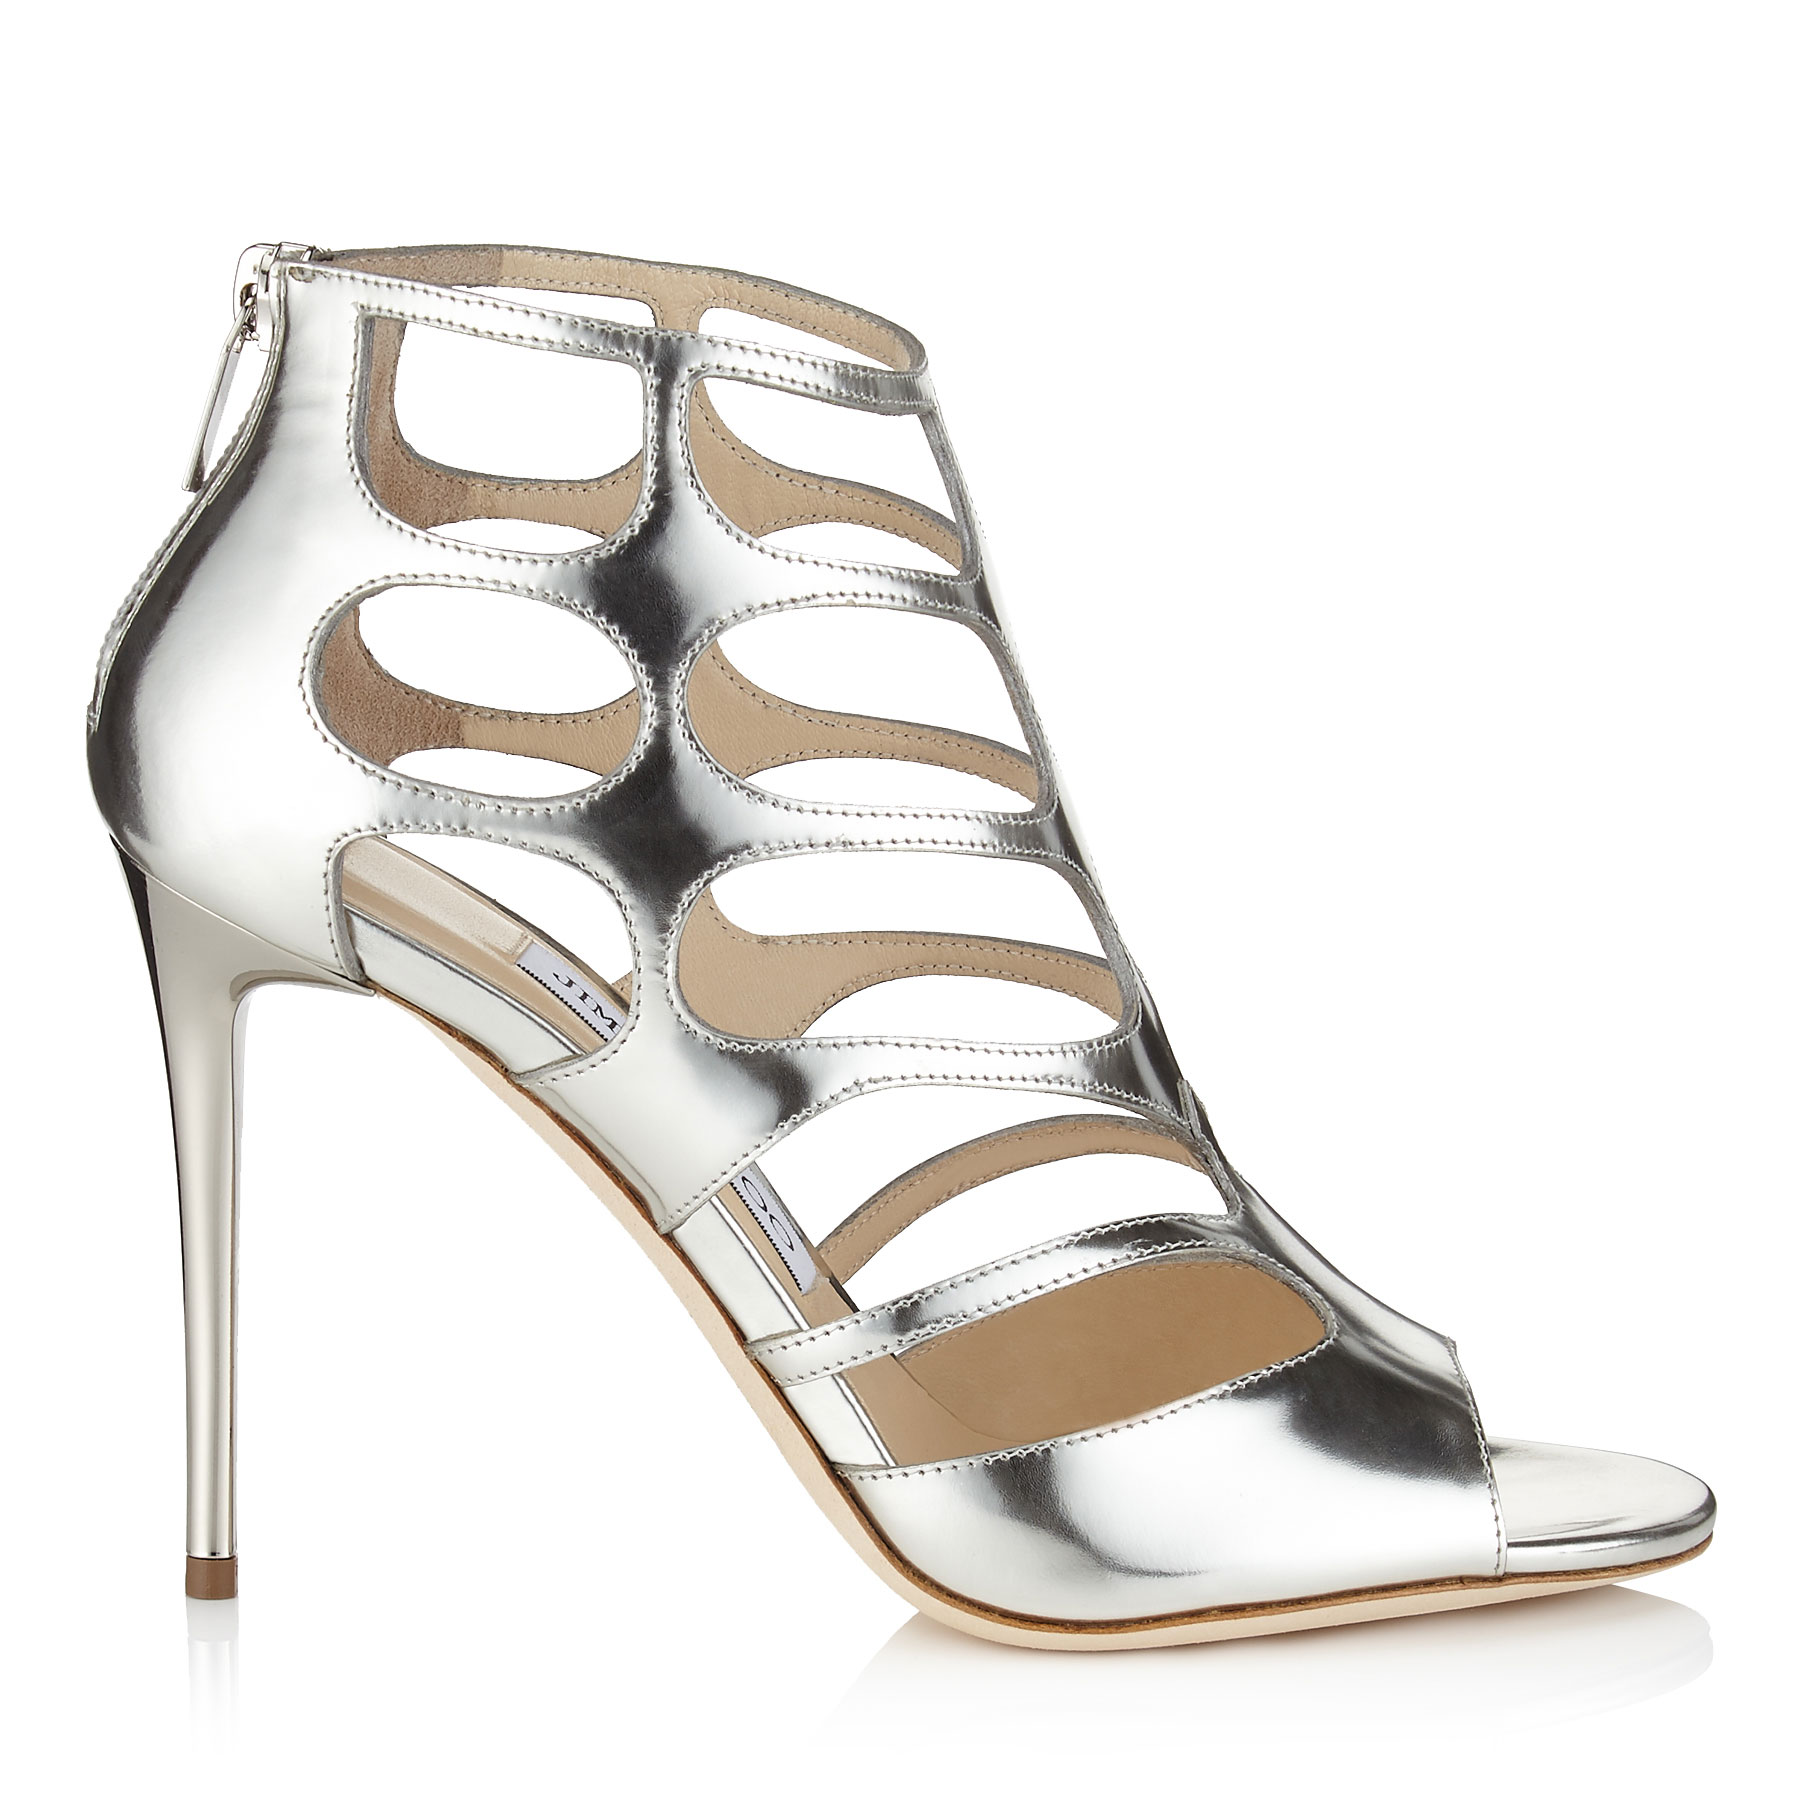 REN 100 Silver Mirror Leather Sandals by Jimmy Choo